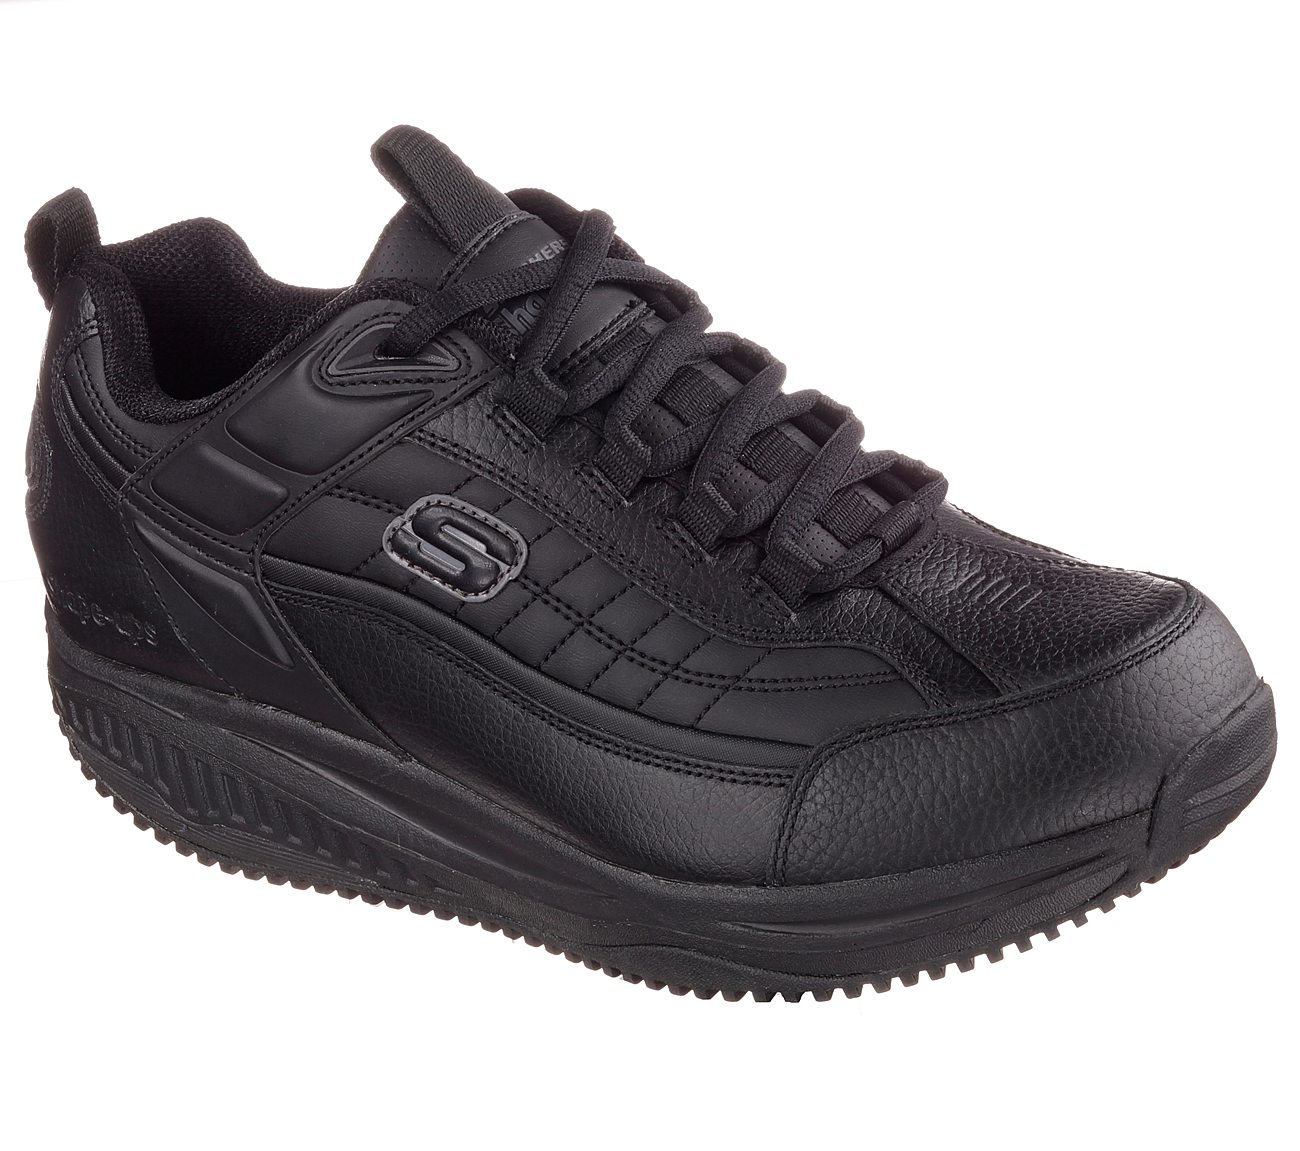 81858984 Buy SKECHERS Work: Shape-ups - Exeter SR SKECHERS Relaxed Fit Shoes ...